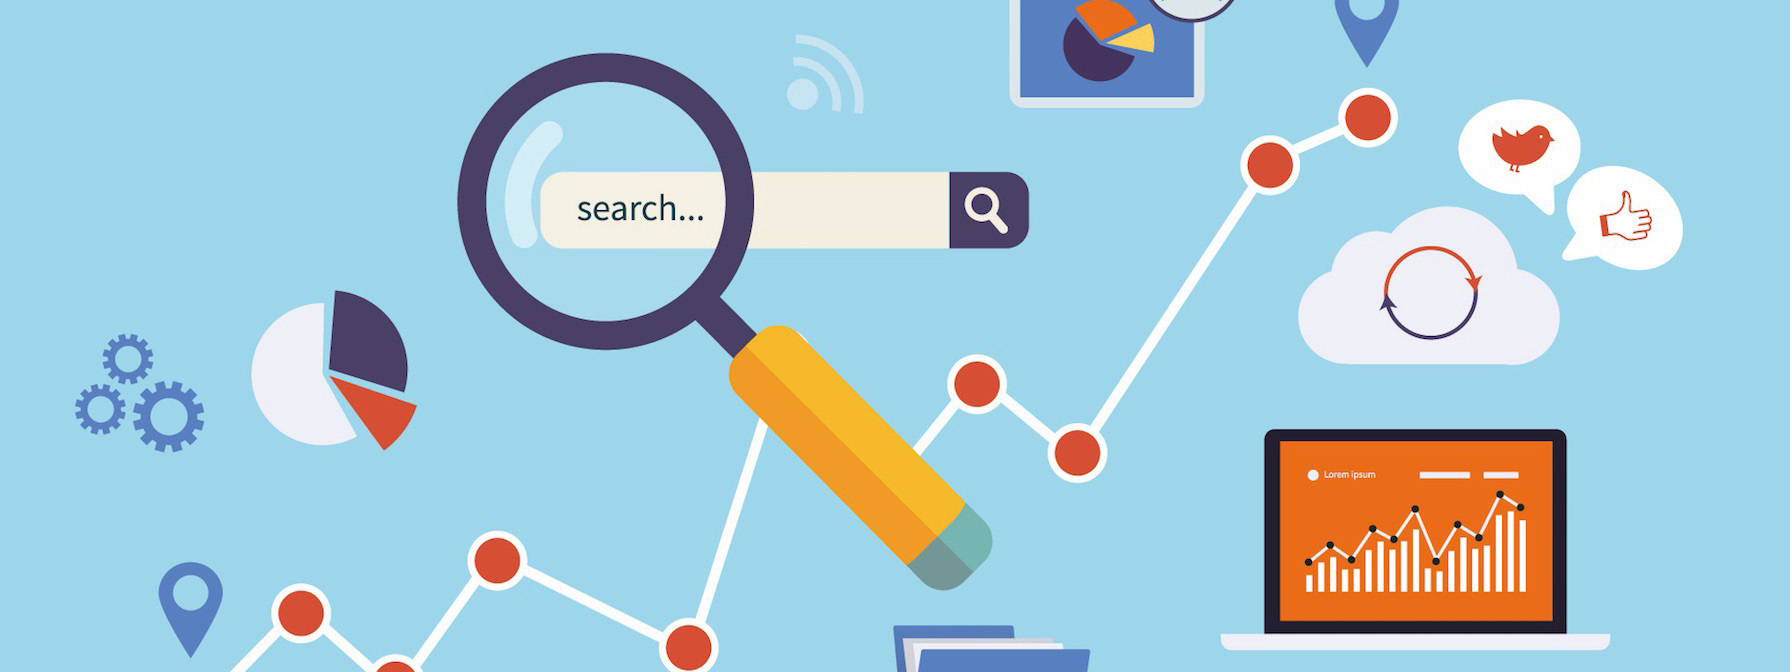 Search engine optimization techniques for seo best practices